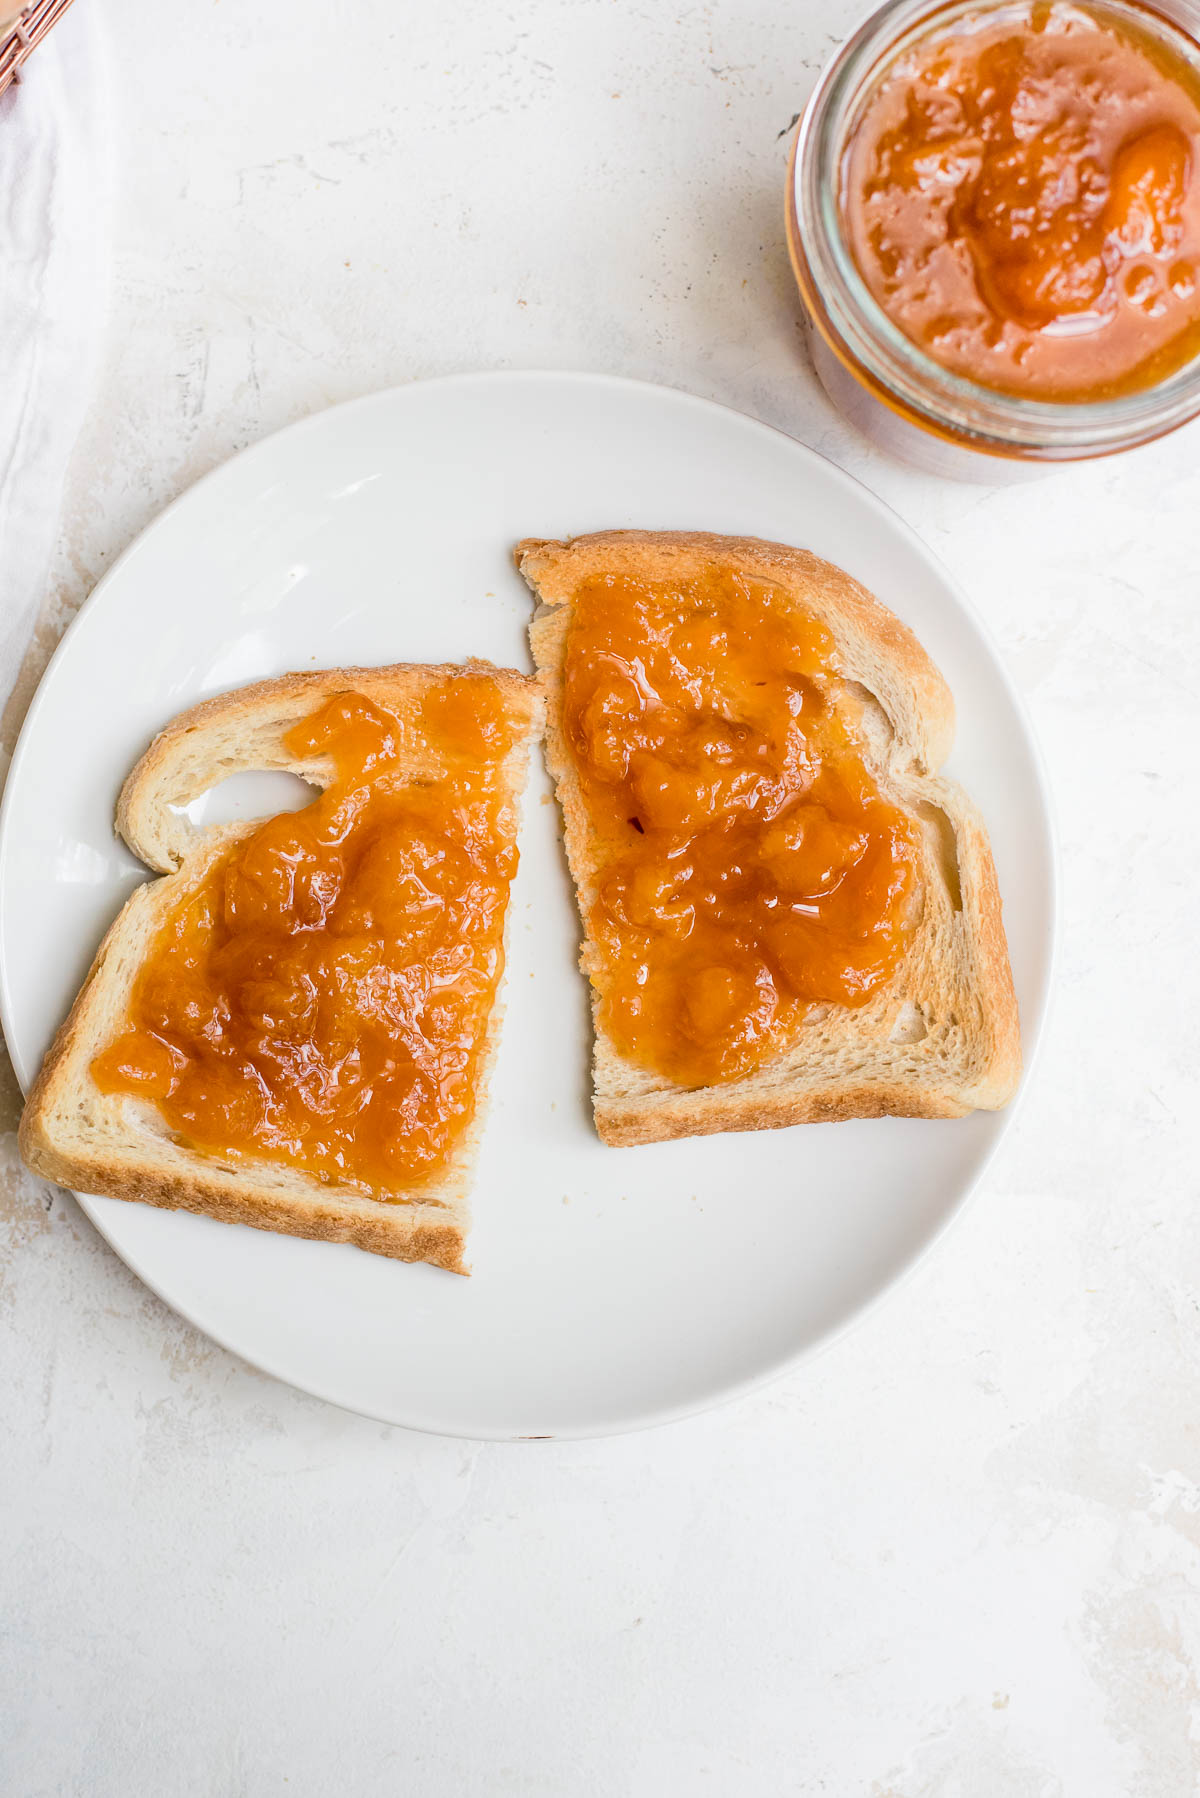 toast cut in half slathered with peach jam